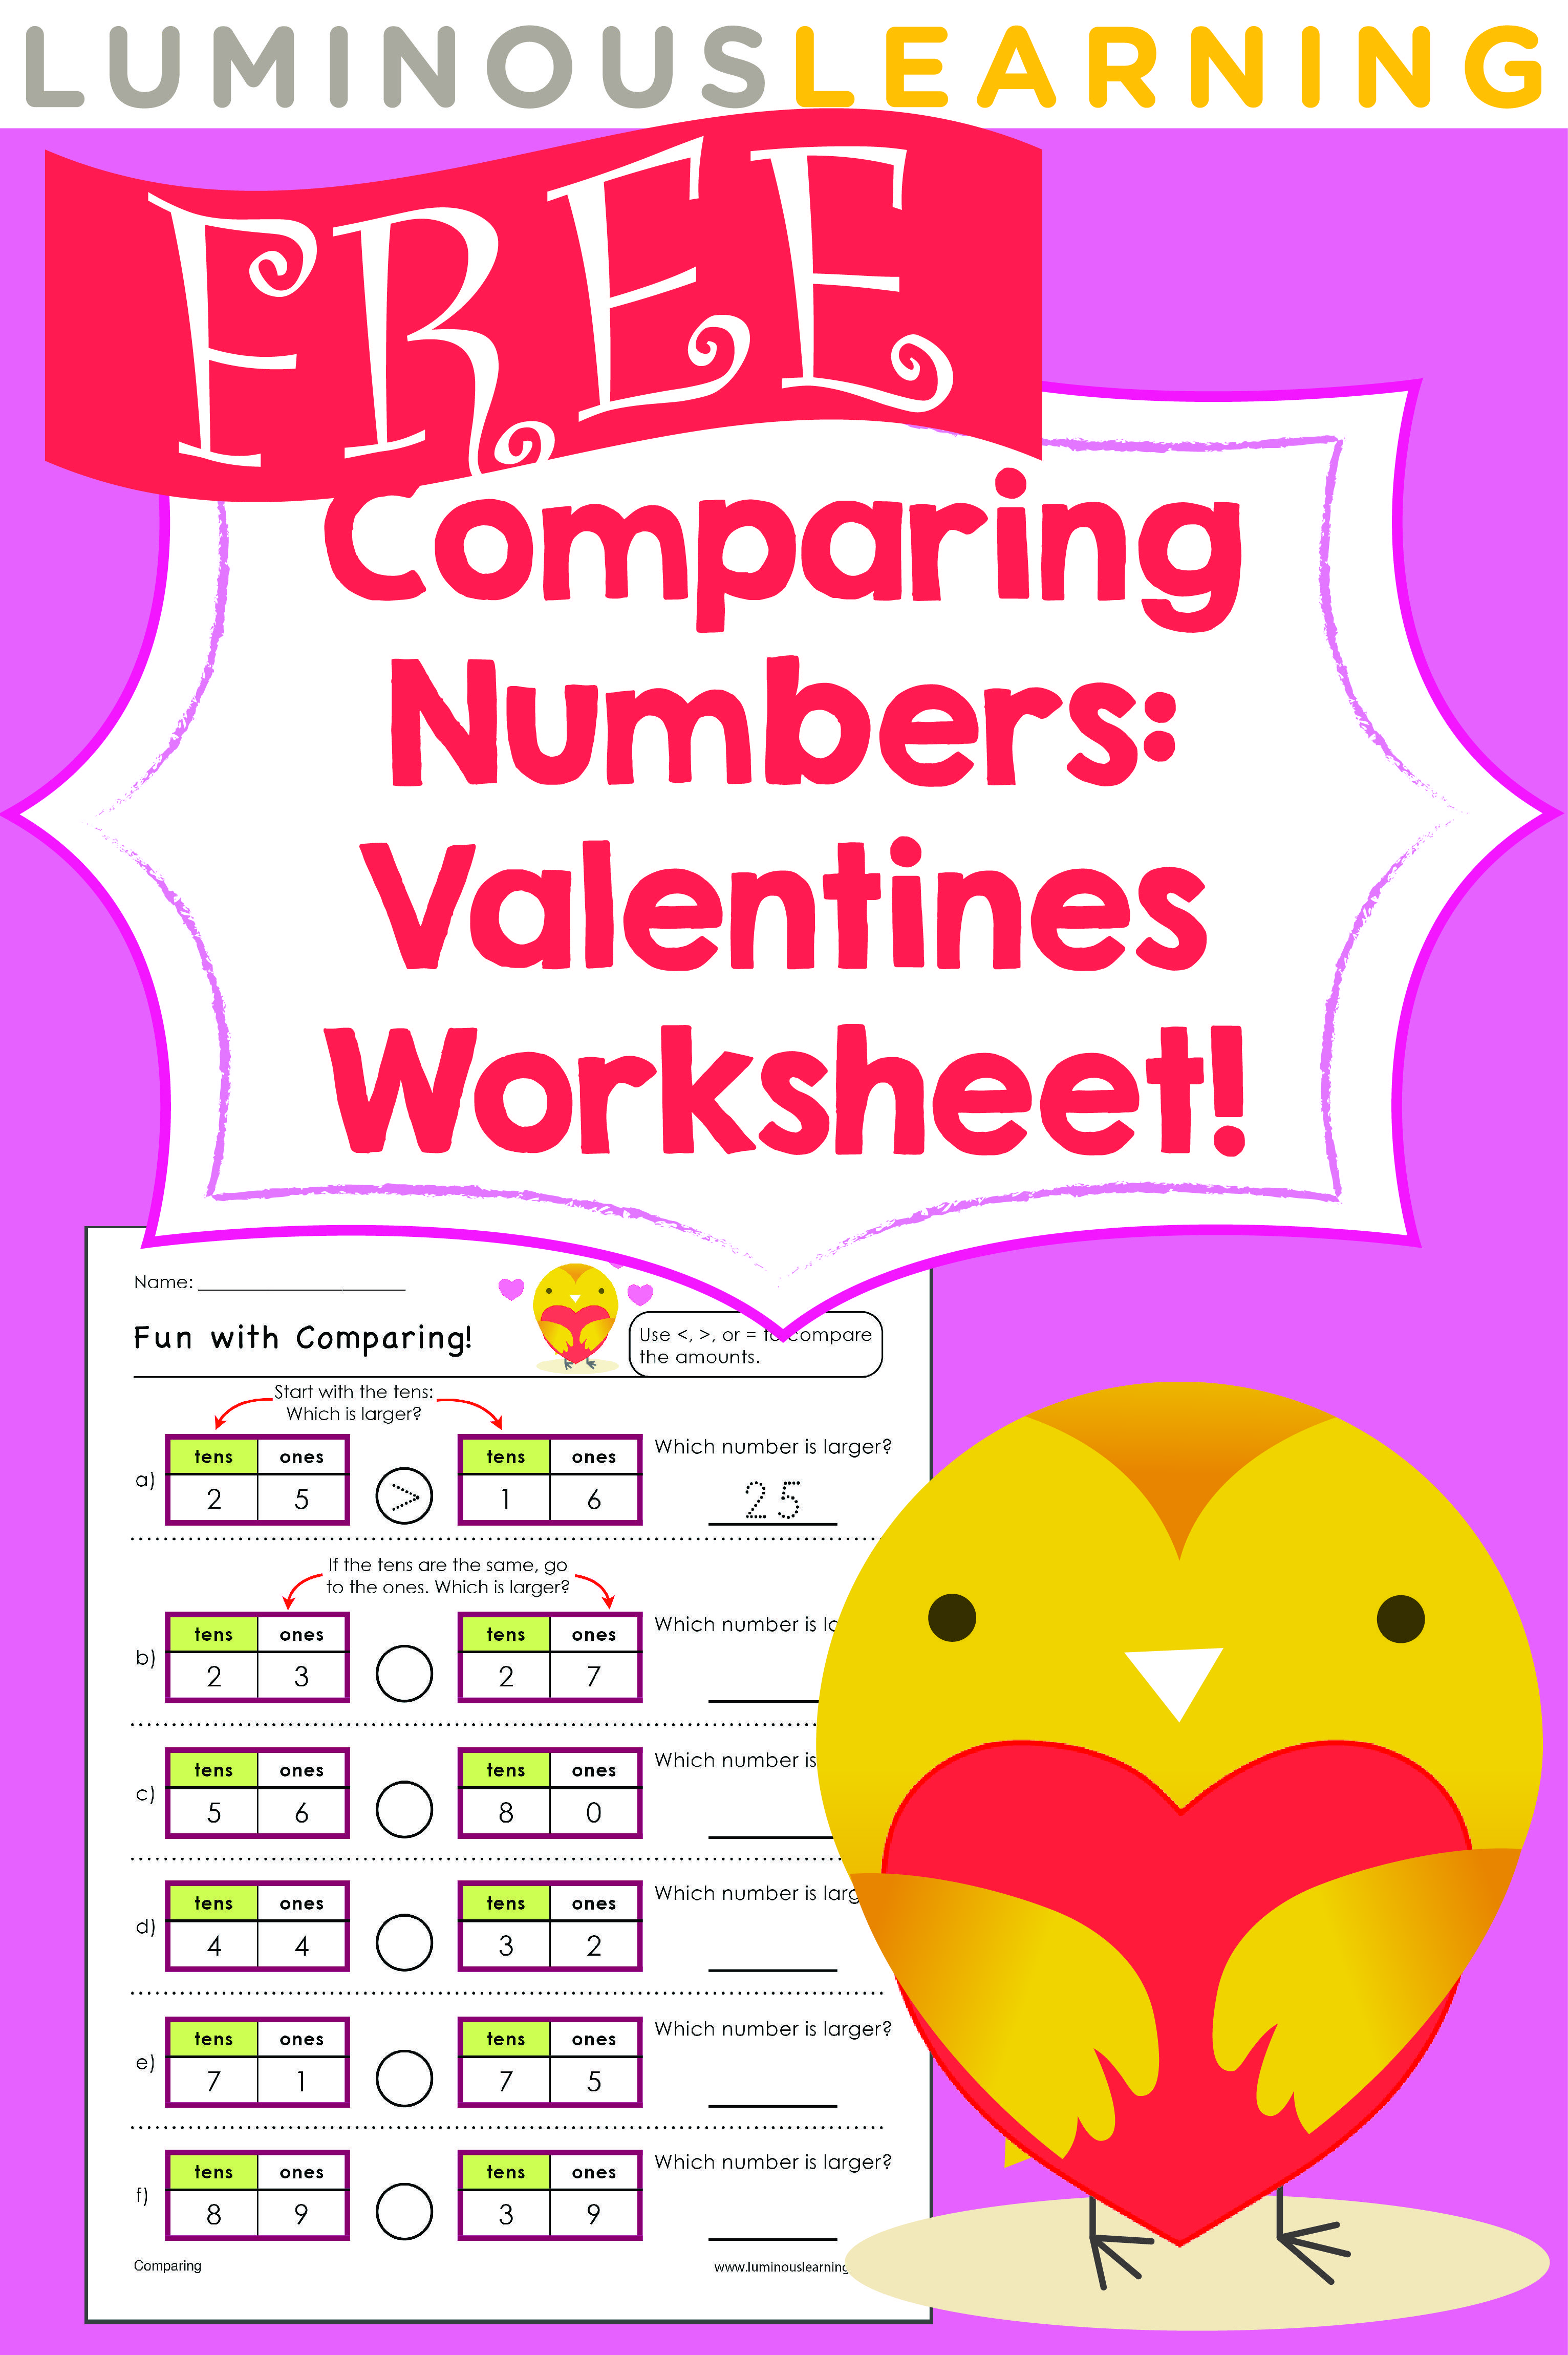 Luminous Learning Free Valentines Worksheet Comparing